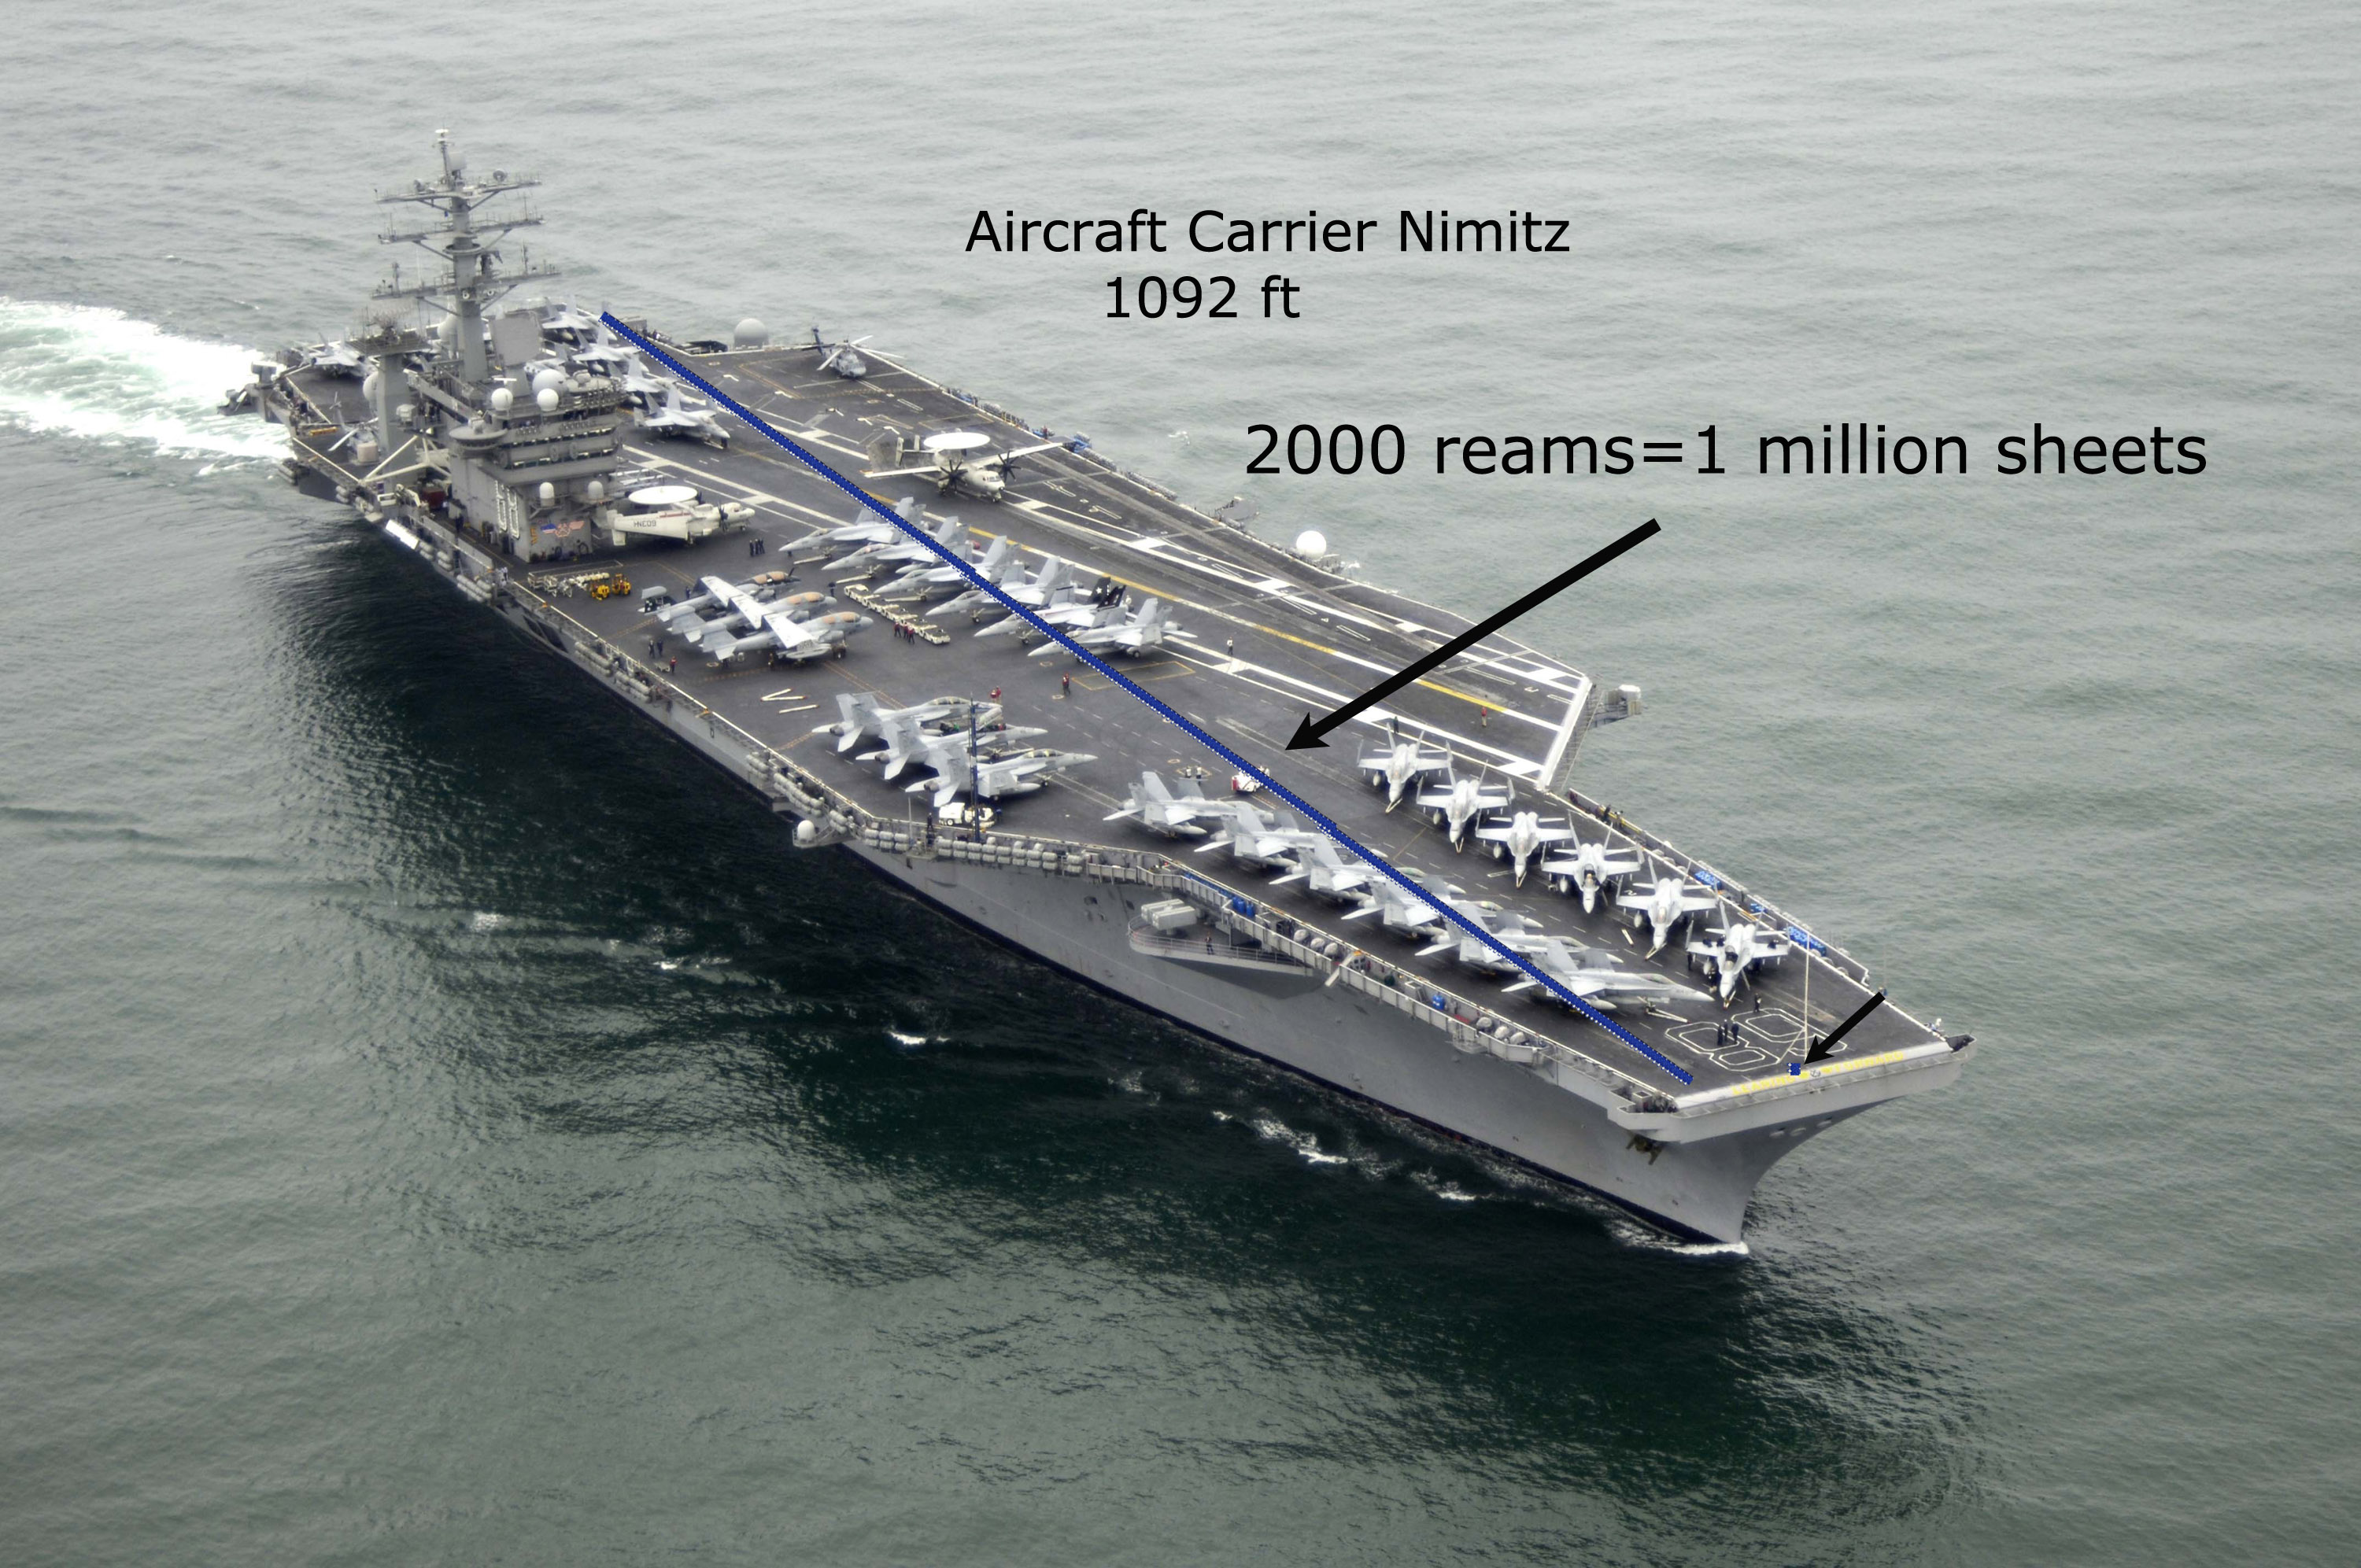 nimitz dating site Militarycom enables the millions of americans with military affinity to access their benefits, find jobs, enjoy military discounts, and stay connected.